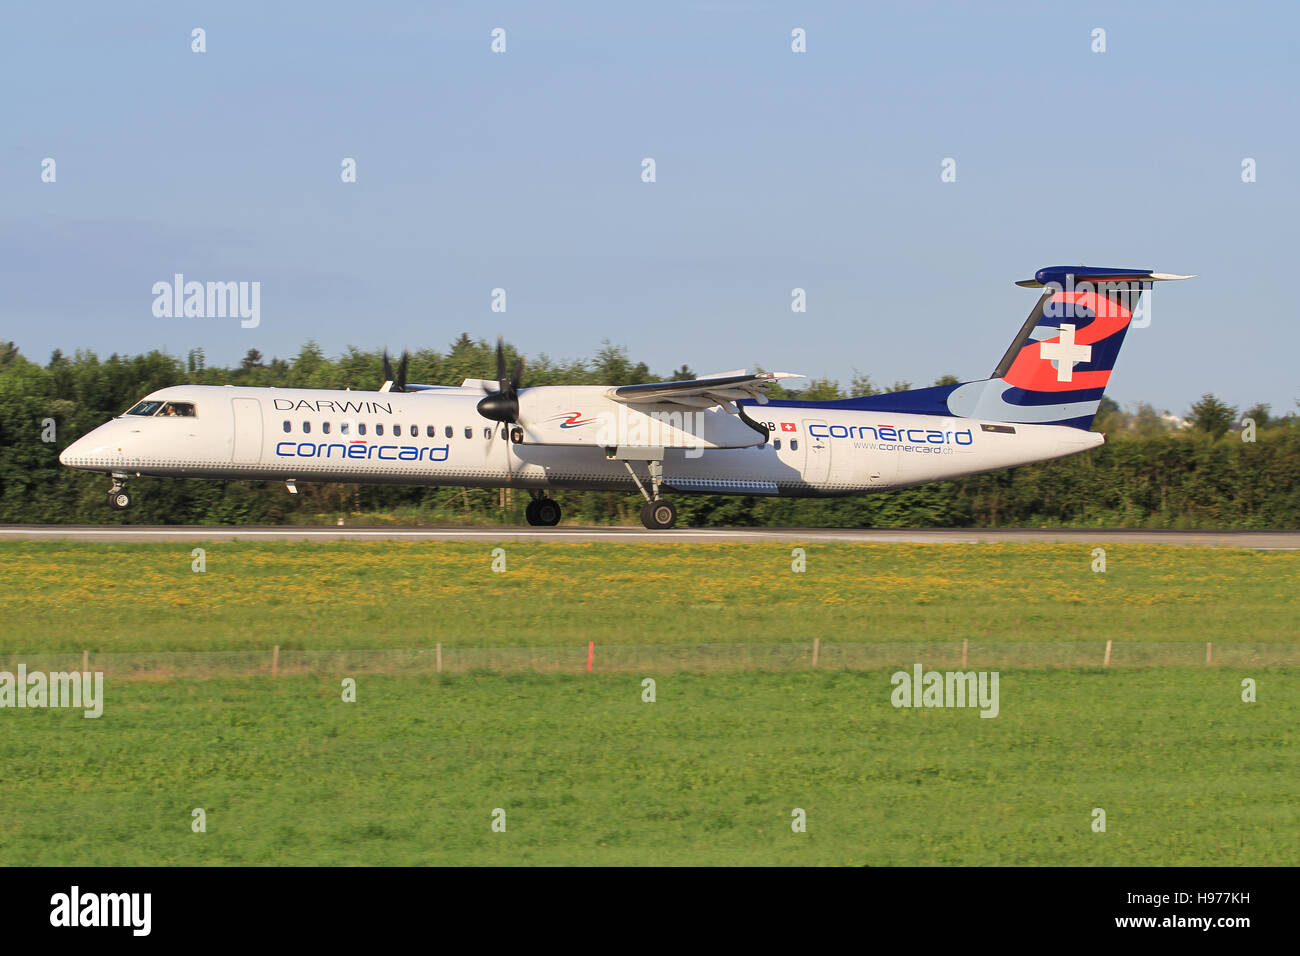 Zurich/Switzerland July10, 2016: Dash 8 from Darwin landing at Zurich Airport. - Stock Image